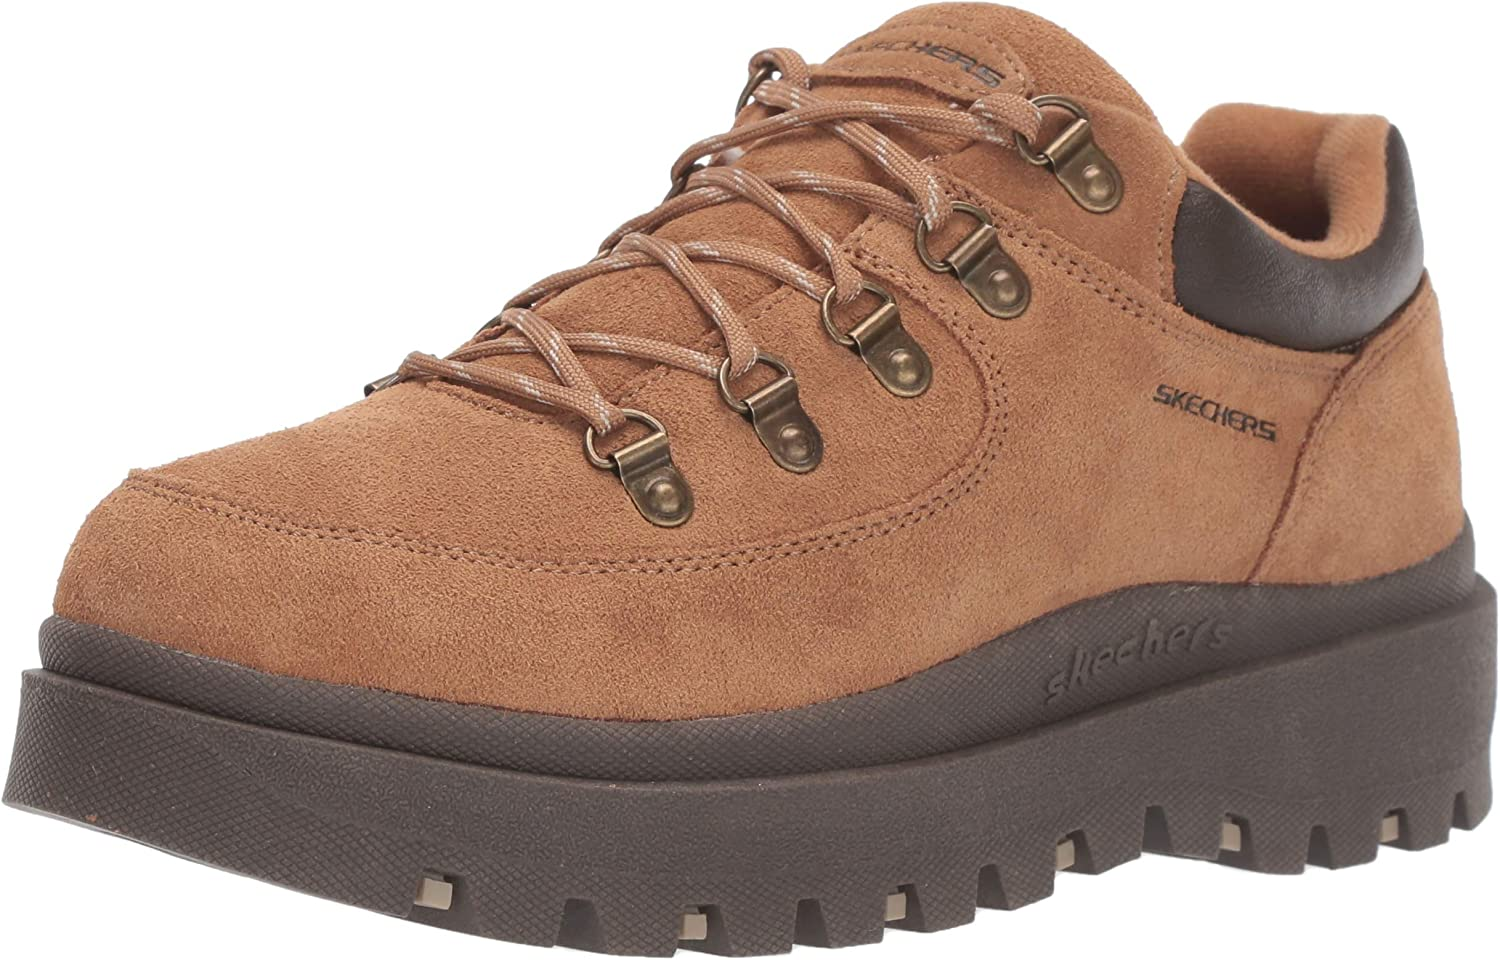 Skechers Women's Shindigs-Stompin' Colorado Springs Mall -Rugged 5-Eye Style Heritage Limited price